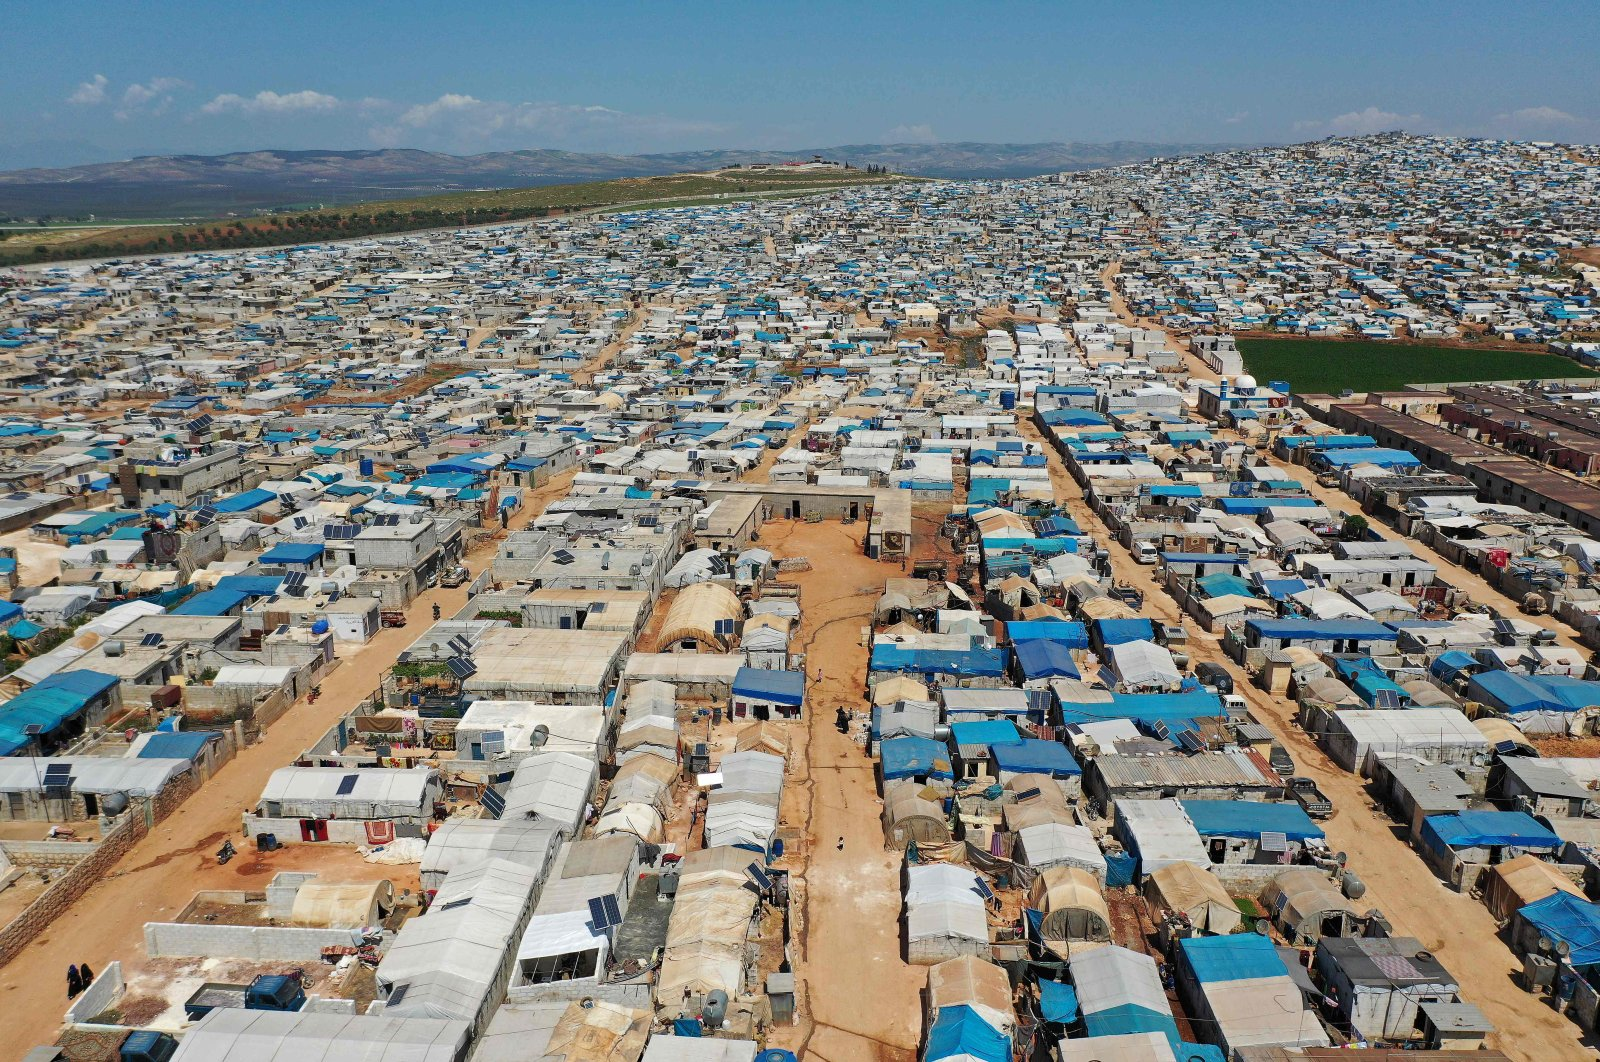 An aerial view shows the Atme camp for displaced Syrians close to the border with Turkey in Syria's northwestern Idlib province, on April 19, 2020. (AFP)